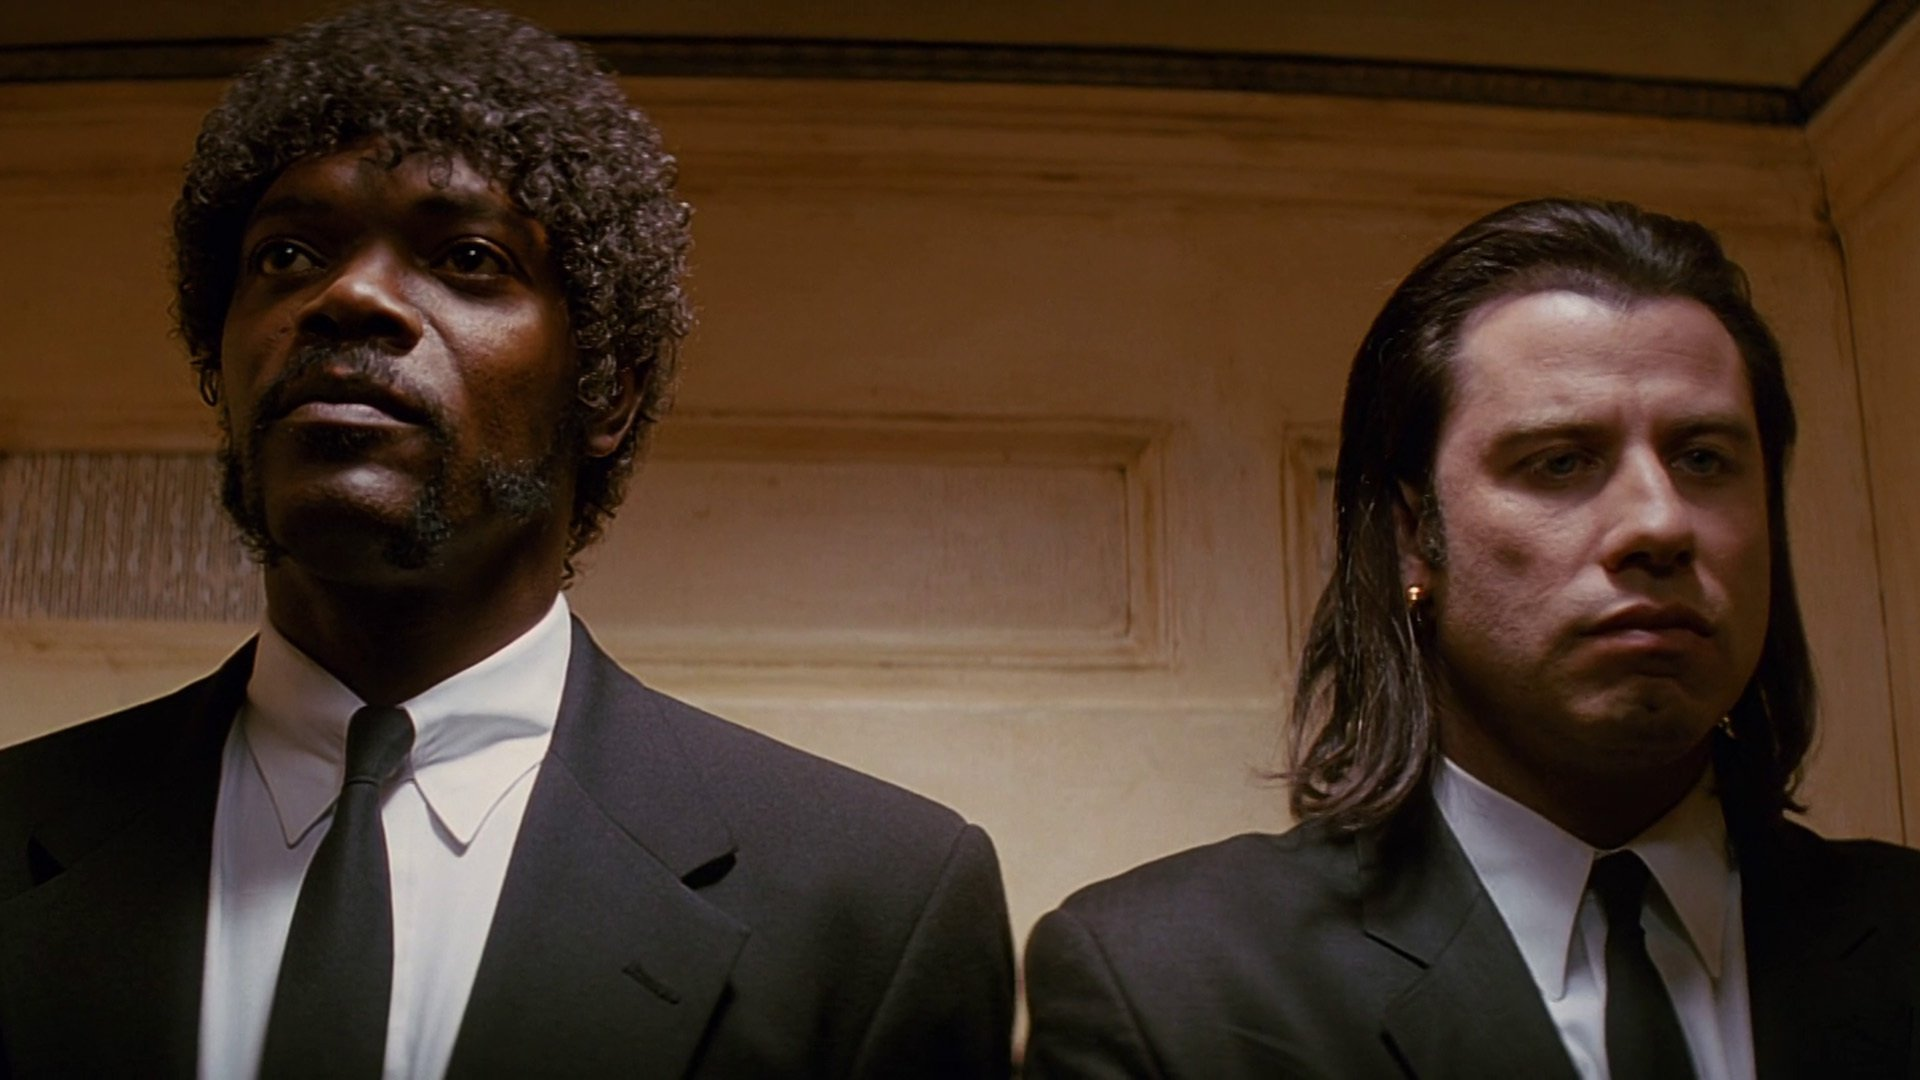 Bible Verse And Image Pulp Fiction Wallpaper: Why Quentin Tarantino's 'Pulp Fiction' Never Got A Sequel